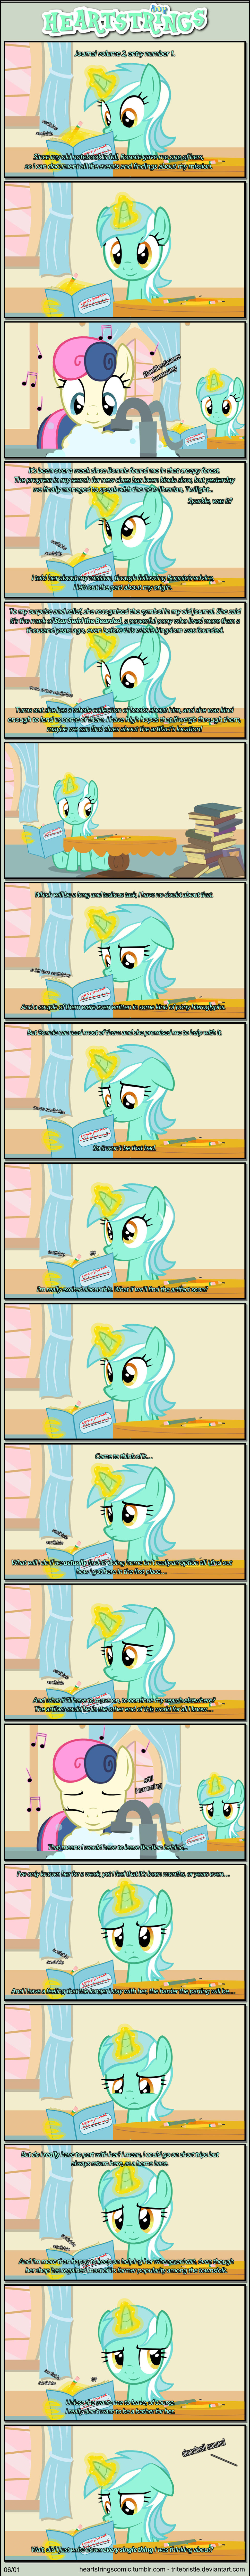 Heartstrings ch6/p01 - Minty Horse Problems